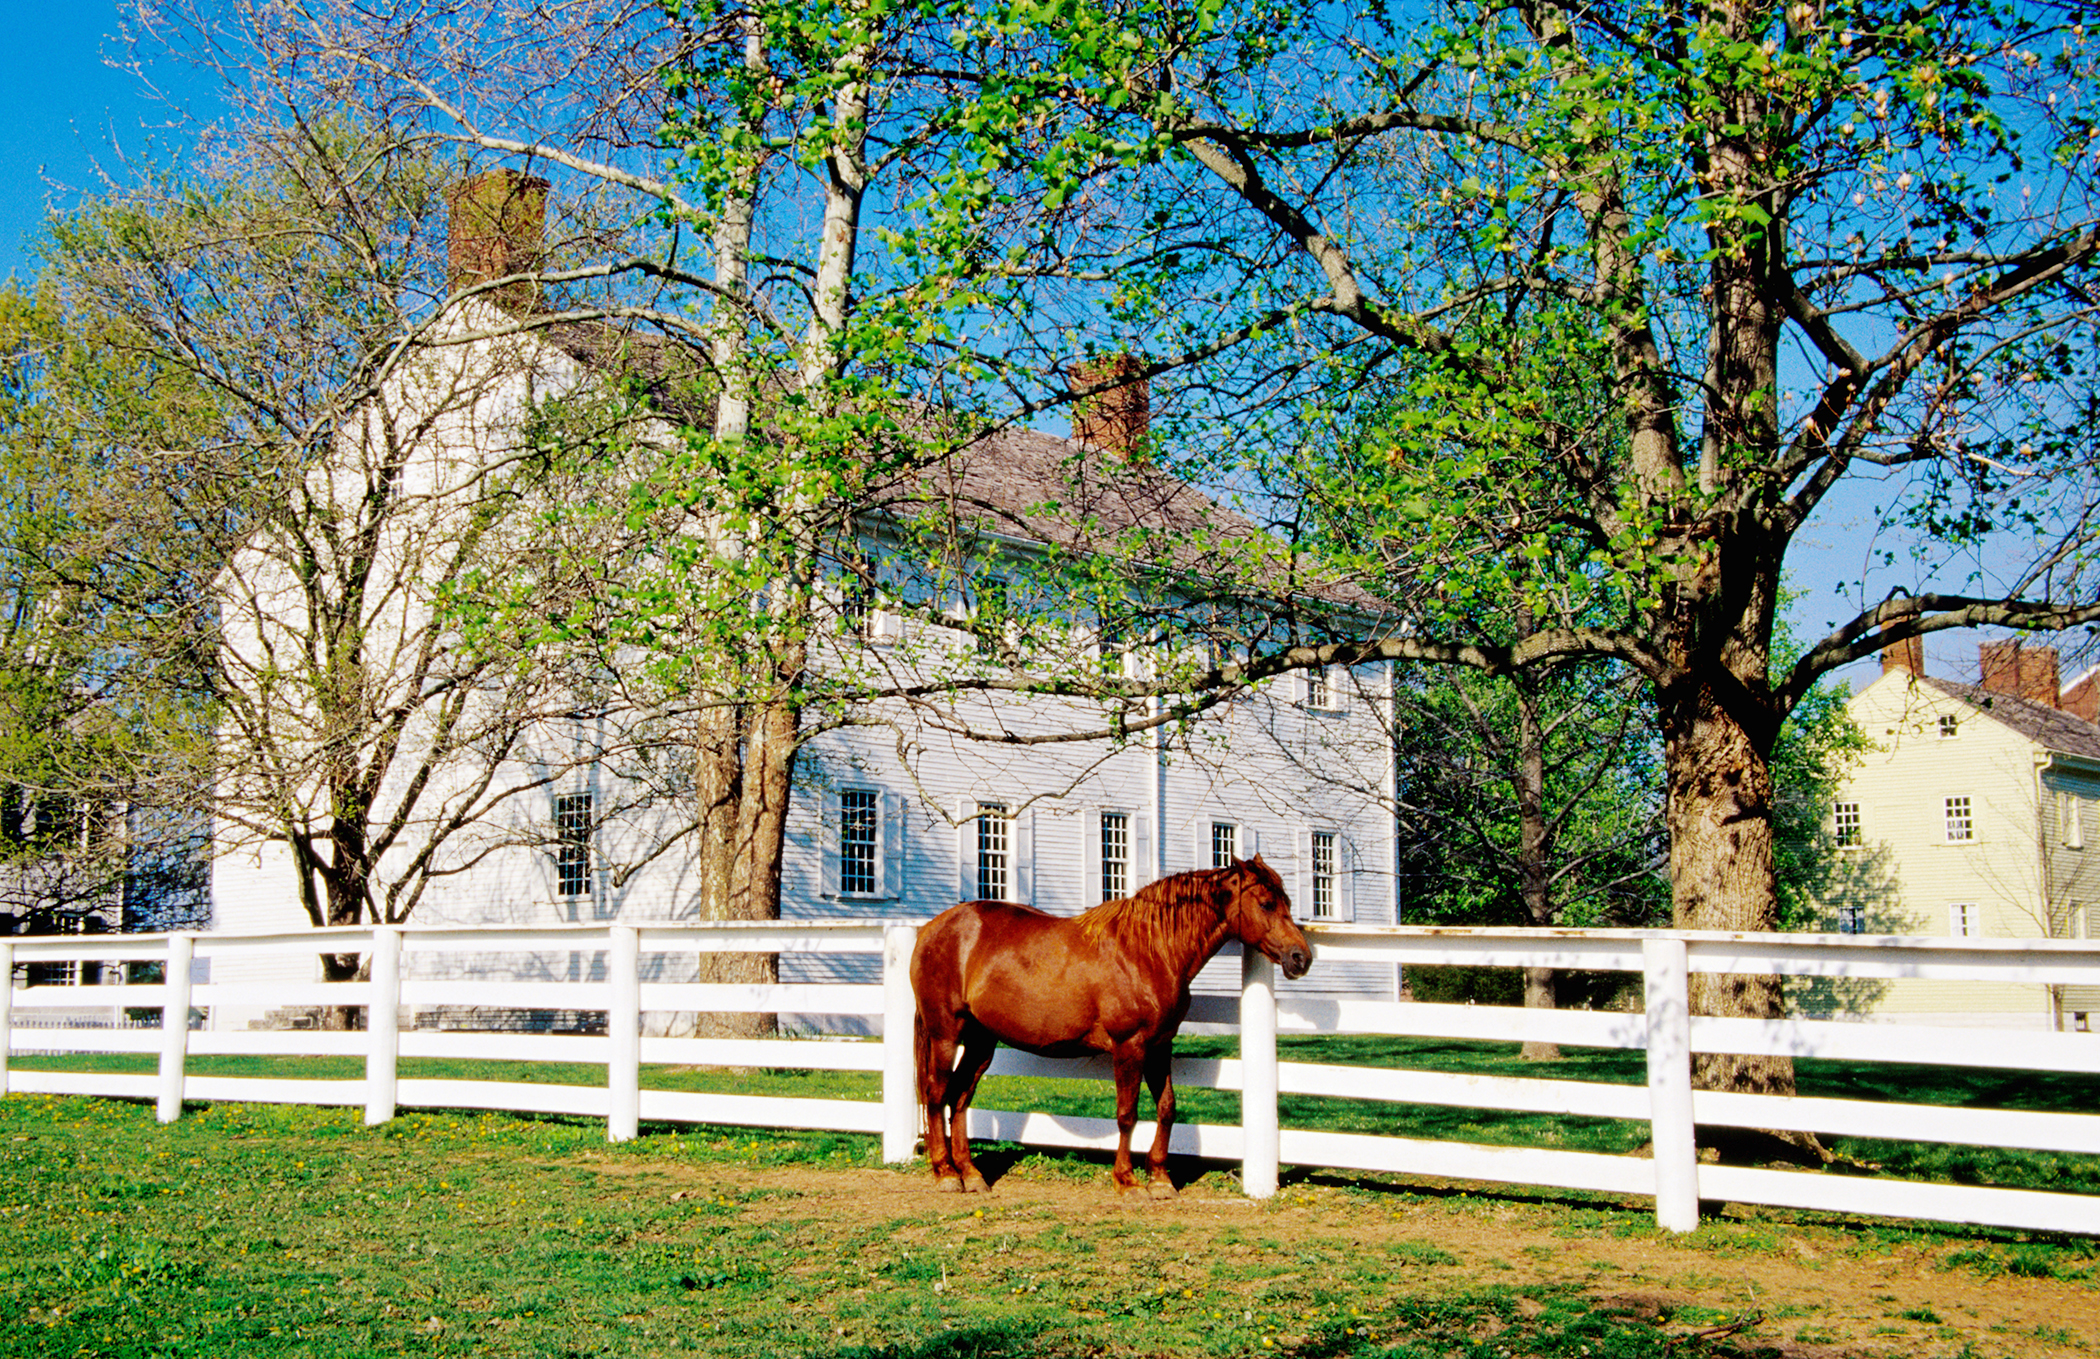 Lexington, Kentucky. The Horse Capital of the World is in the center of the inner Bluegrass Region. And have we mentioned you will never have to worry about finding good bourbon again?